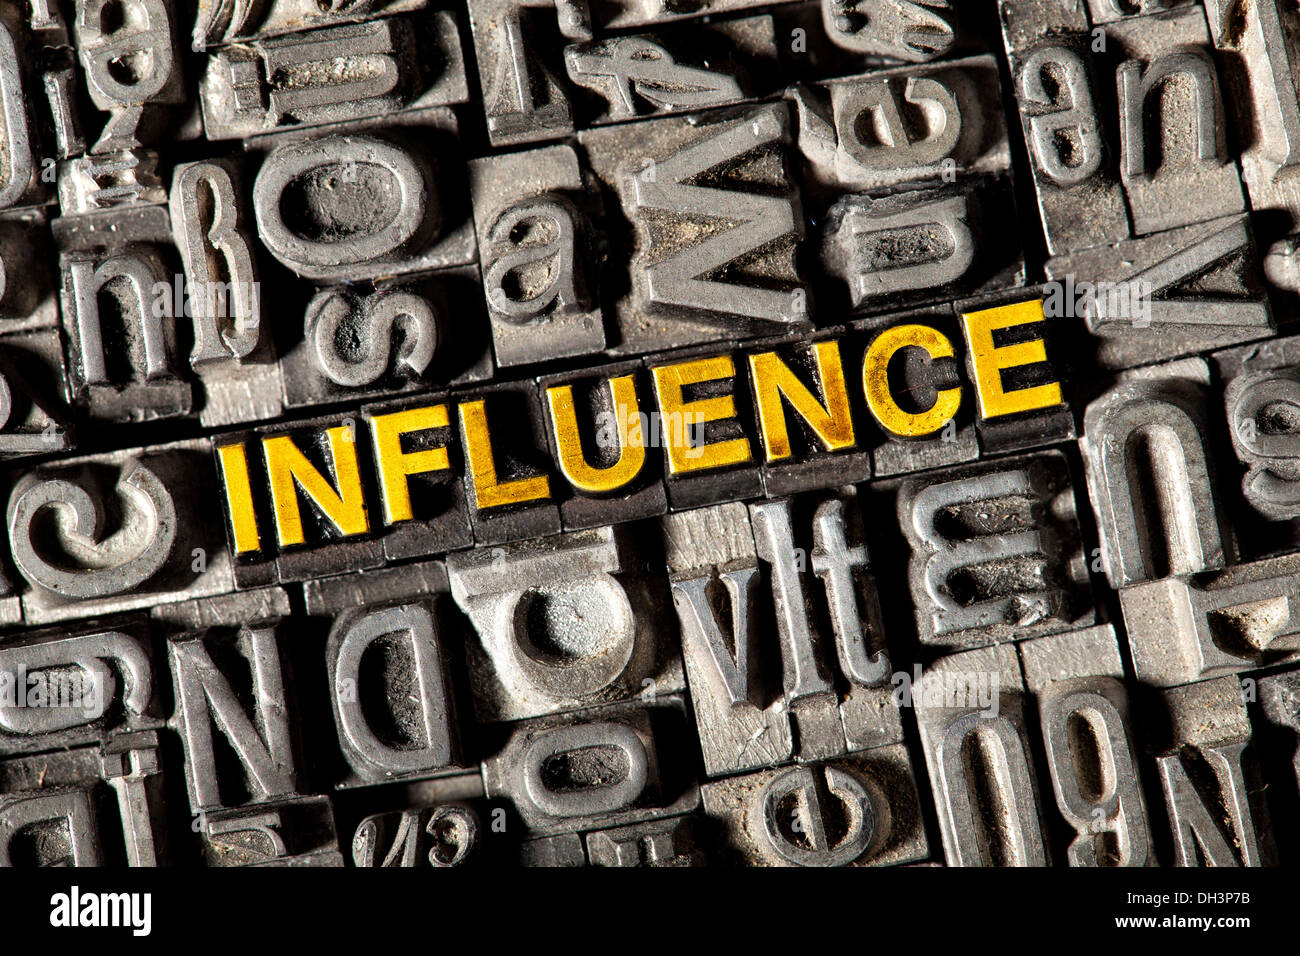 Old lead letters forming the word 'INFLUENCE' - Stock Image